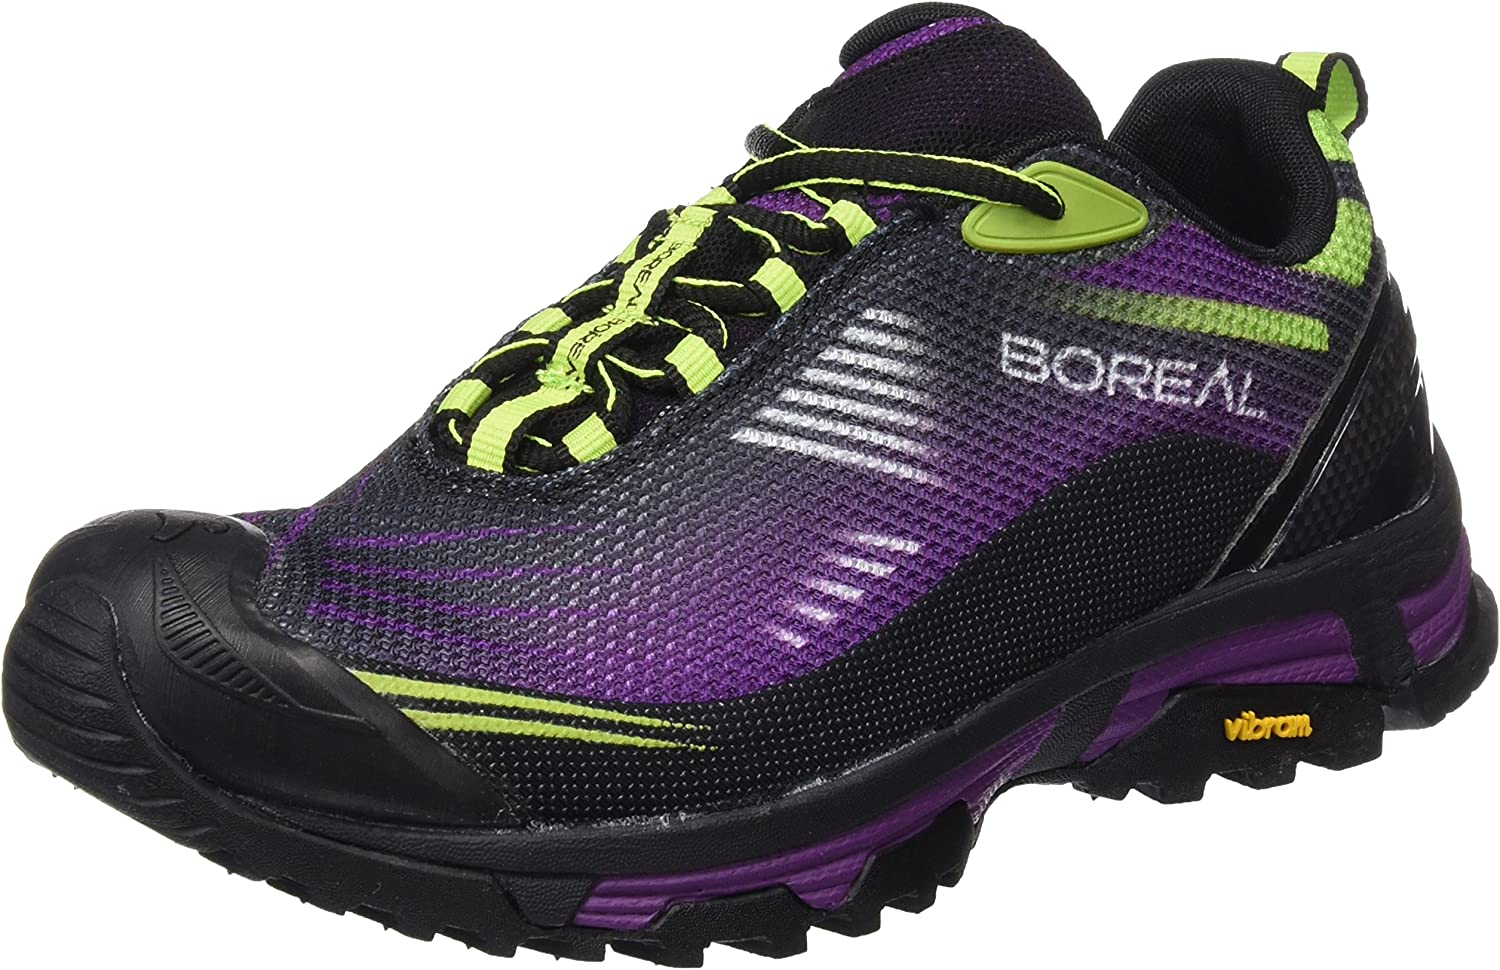 Boreal Climbing shoes Womens Lightweight Chameleon purple 7 purplec 31662